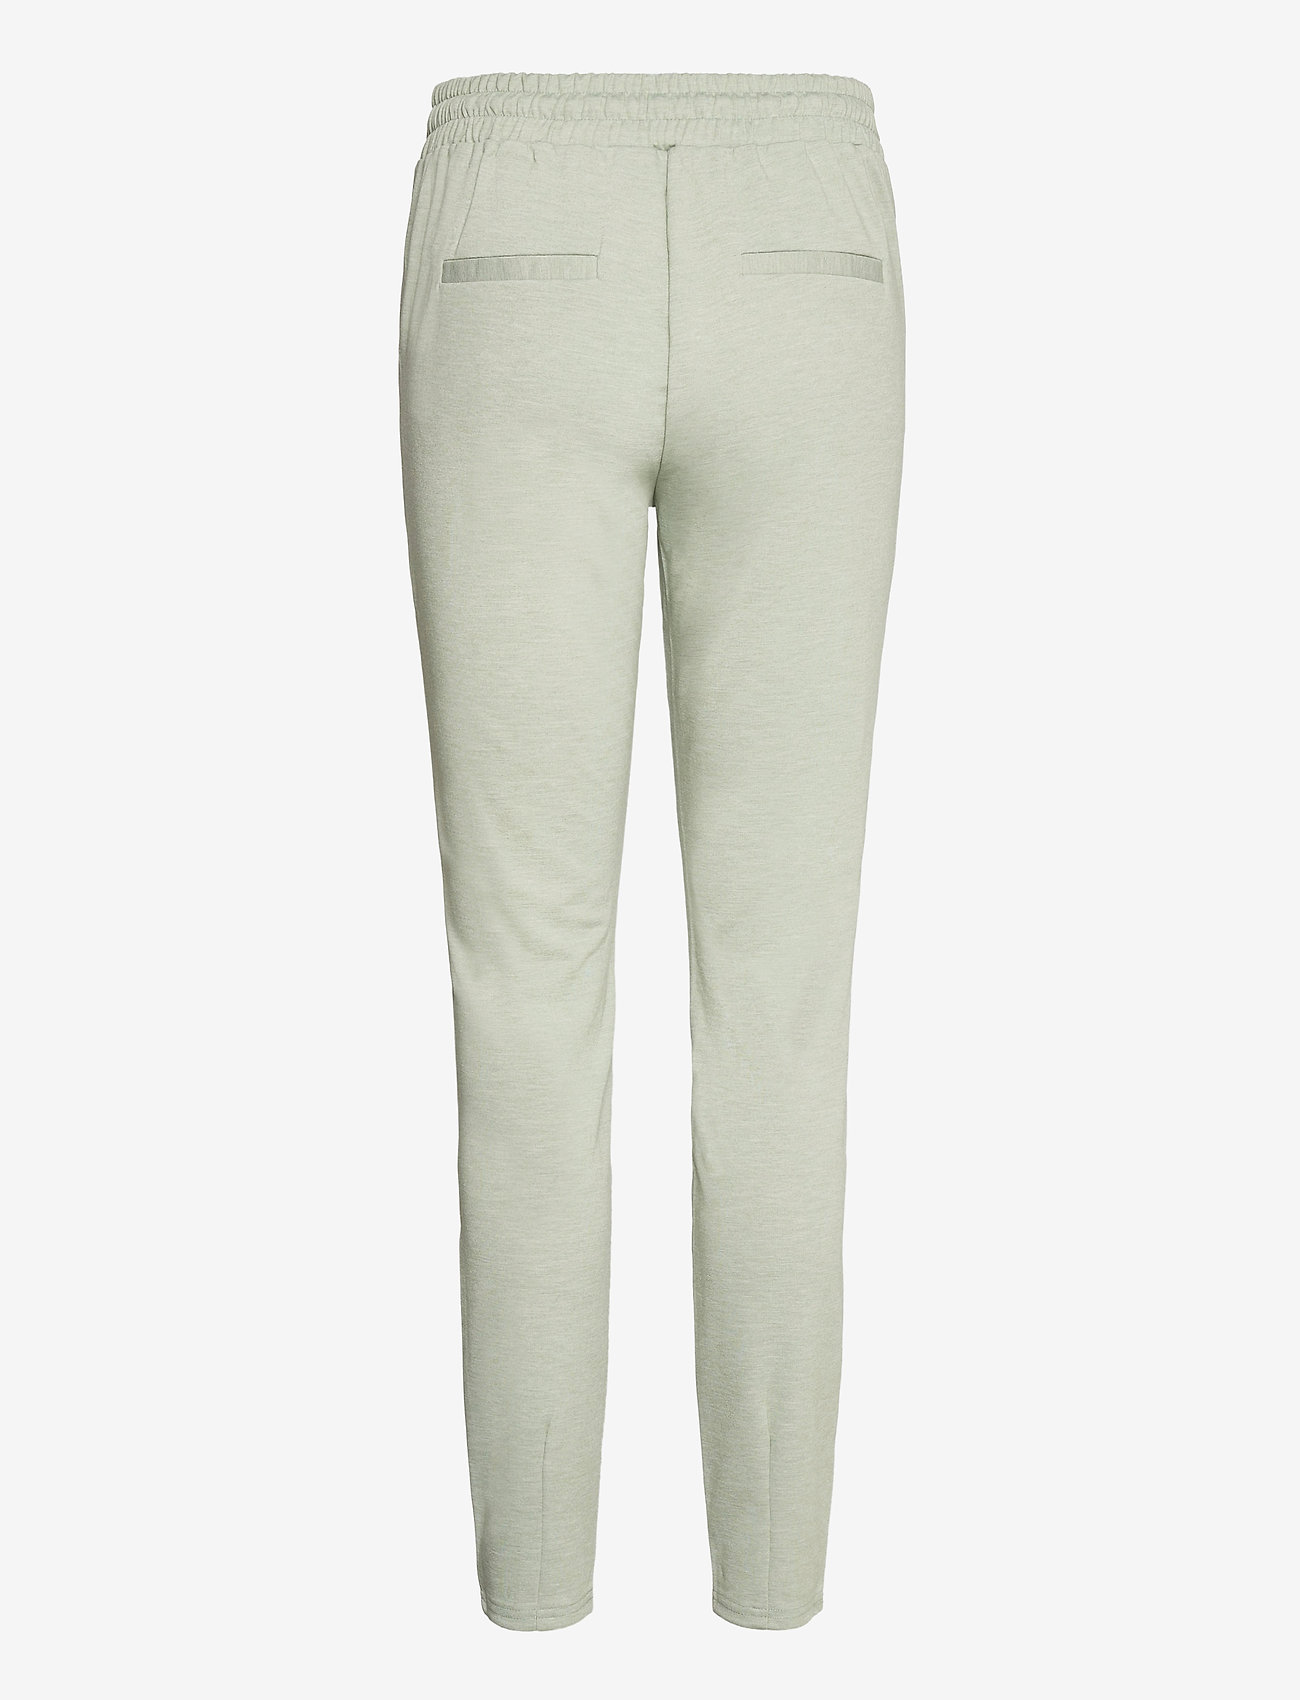 b.young - Rizetta pants 2 - Jersey - slim fit trousers - iceberg green melange - 1